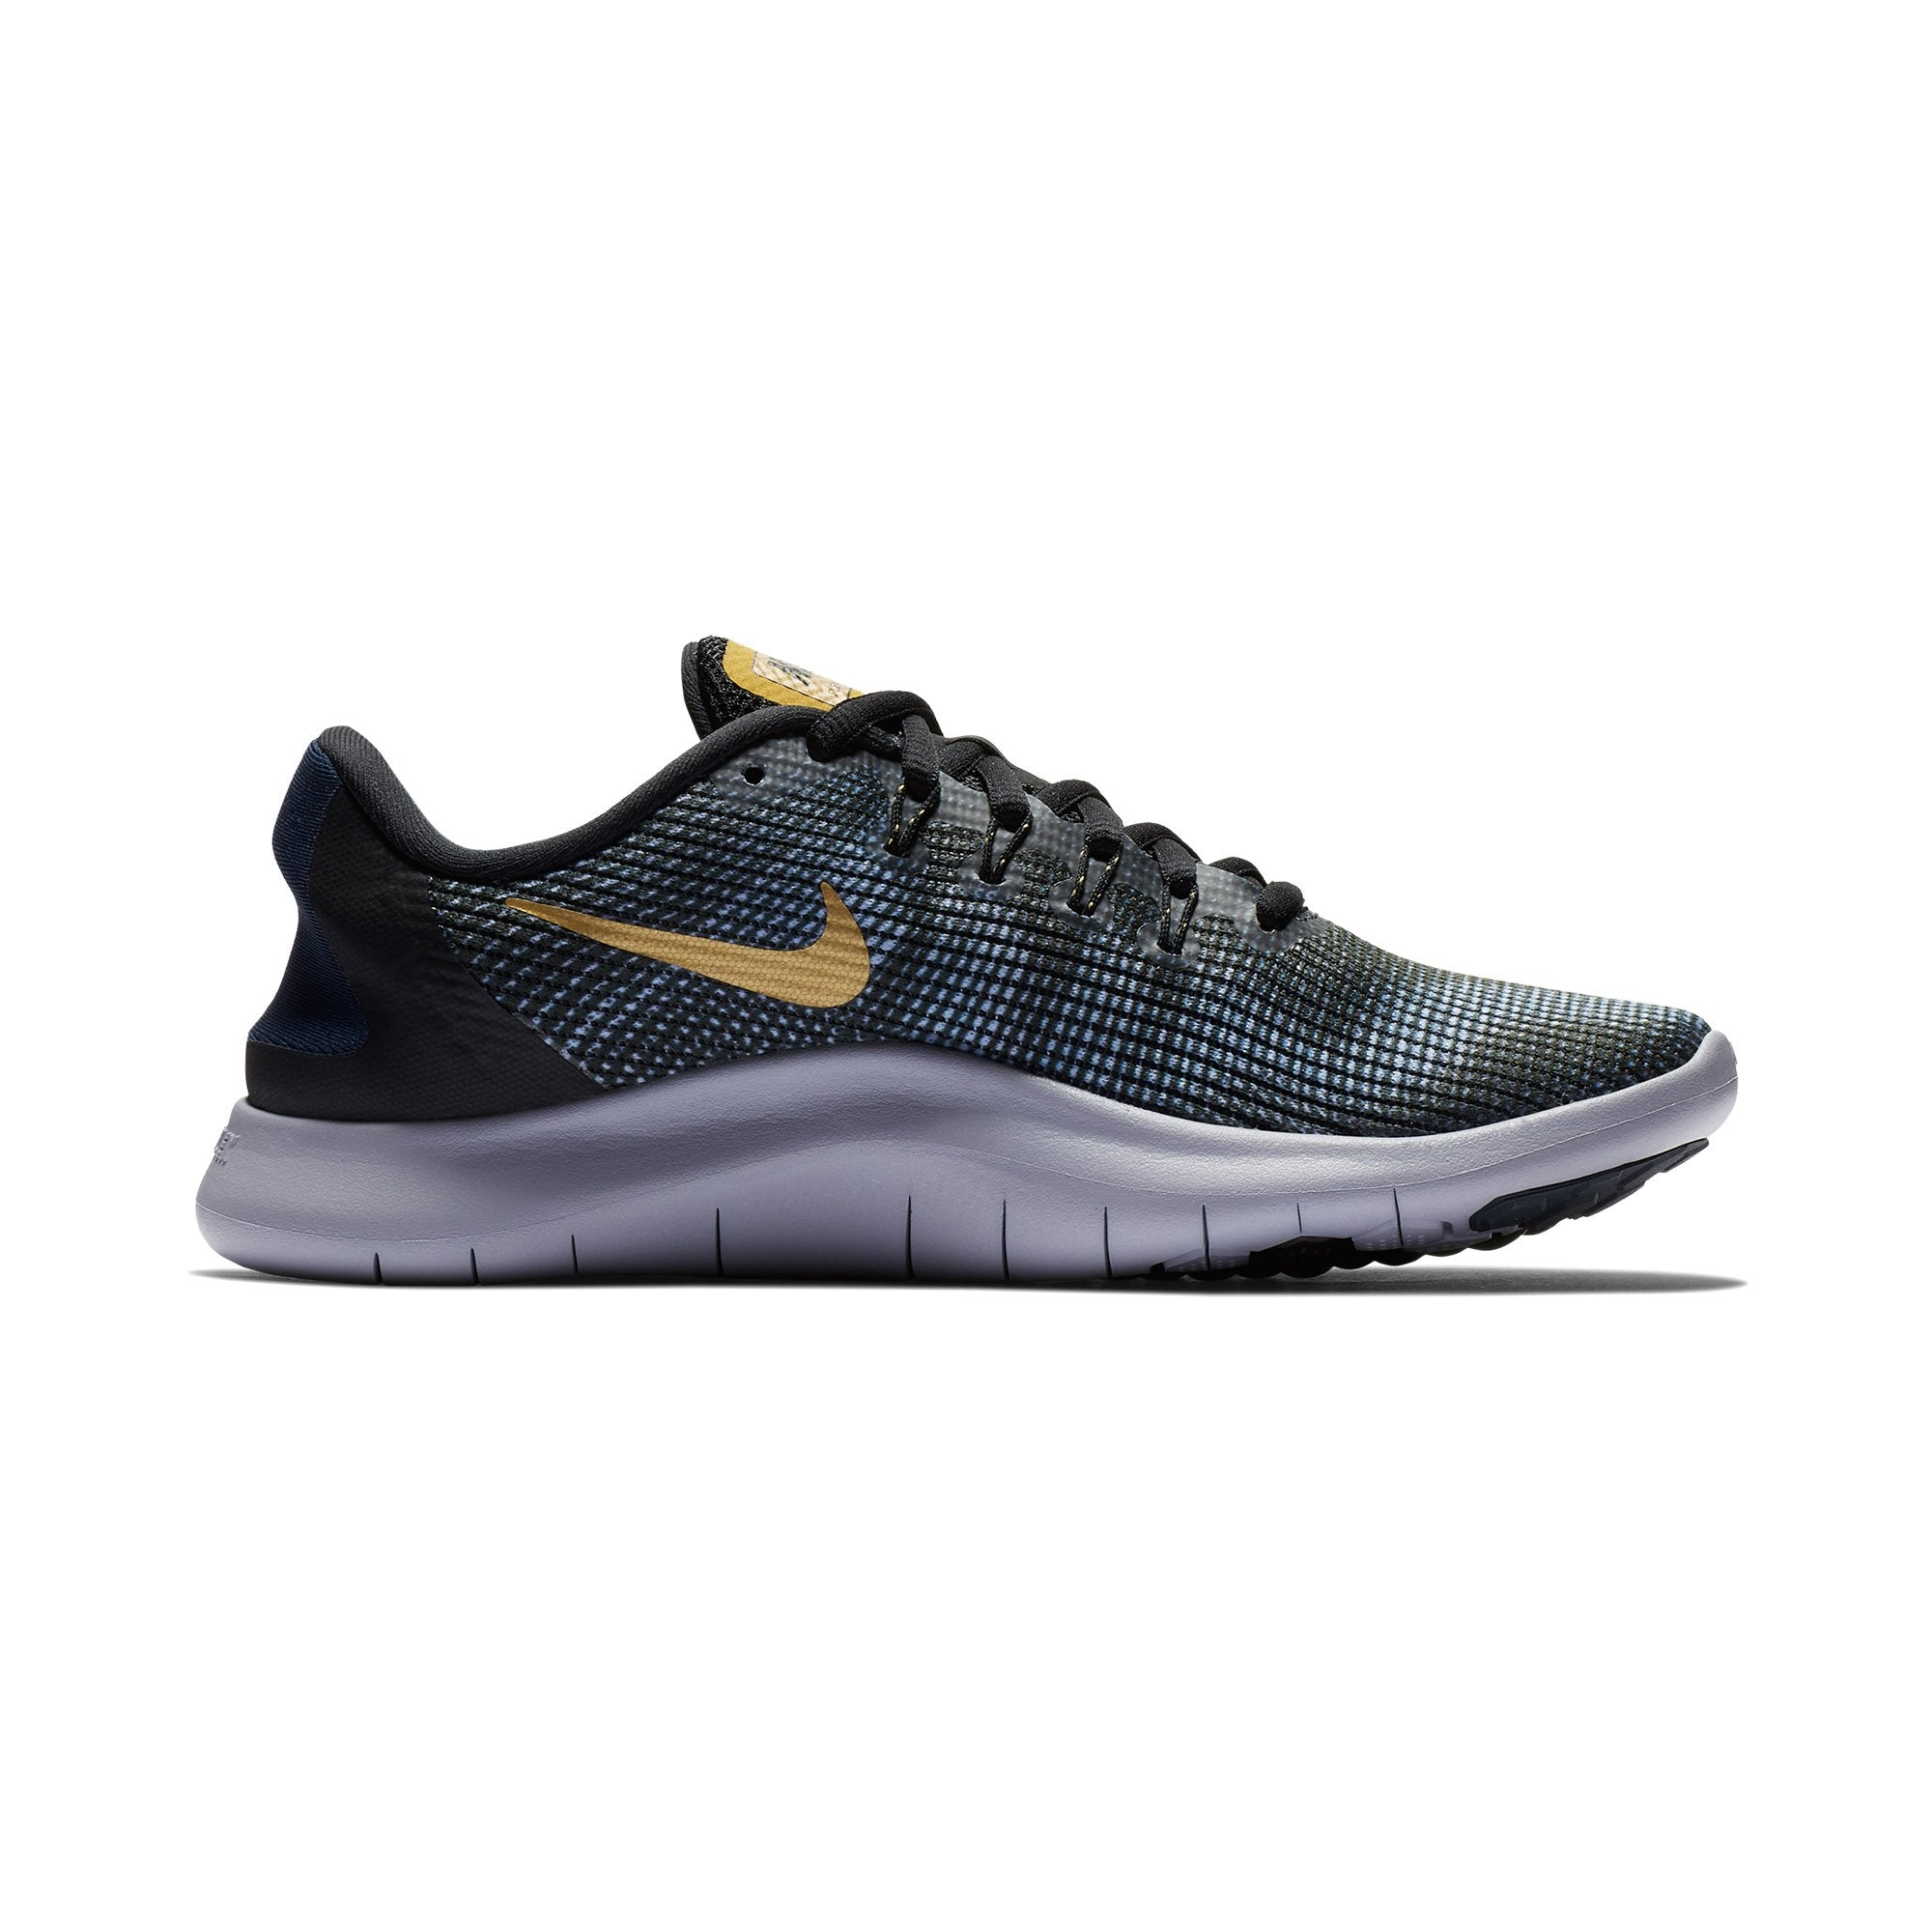 b0a665e58031b3 Buy Nike Women Flex Rn 2018 Running Shoes